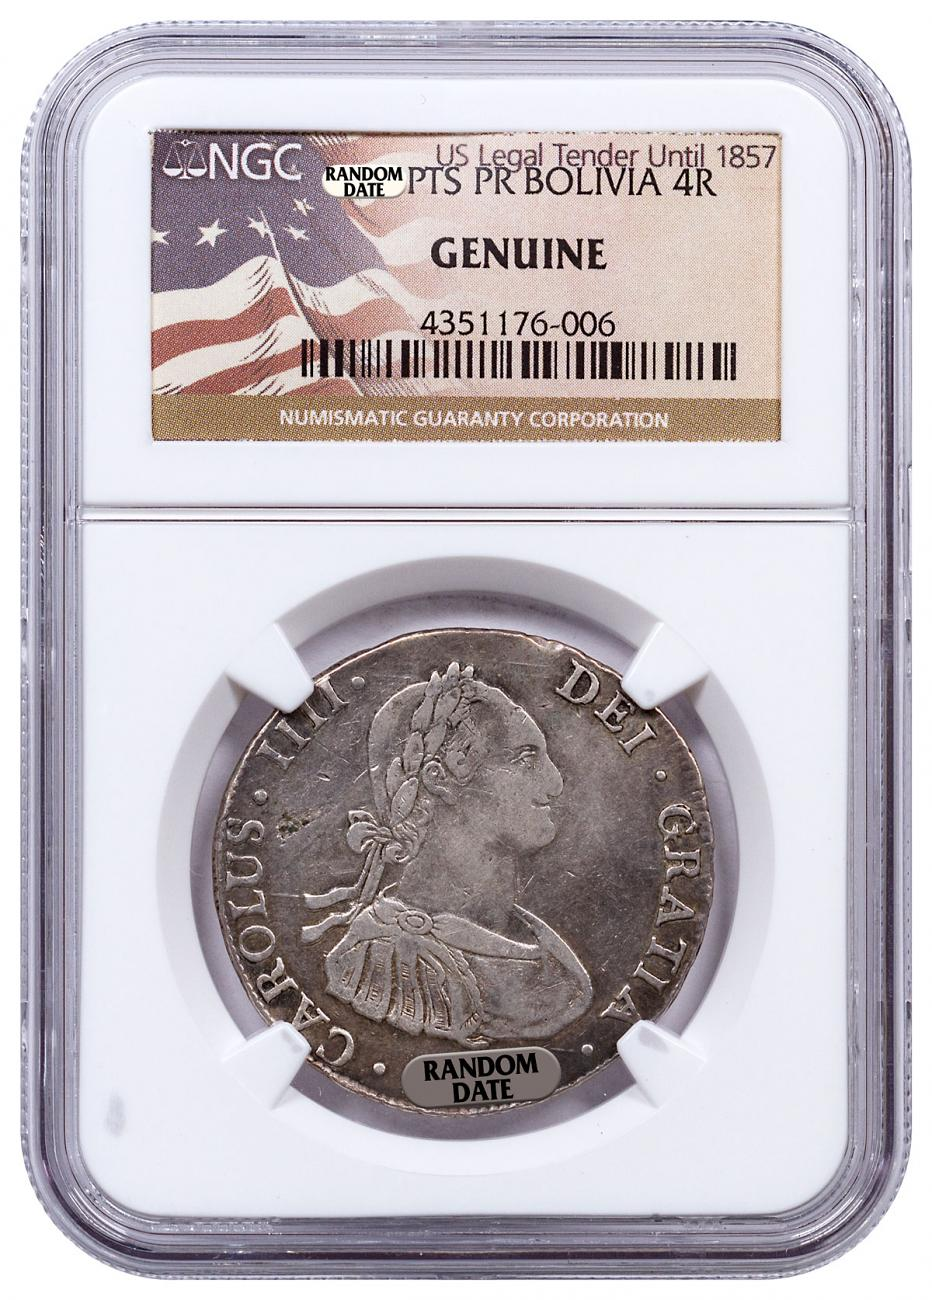 Random Date 1772-1825 Spain Silver 4 Reales - Portrait Type - NGC Genuine (US Legal Tender Until 1857 Label)